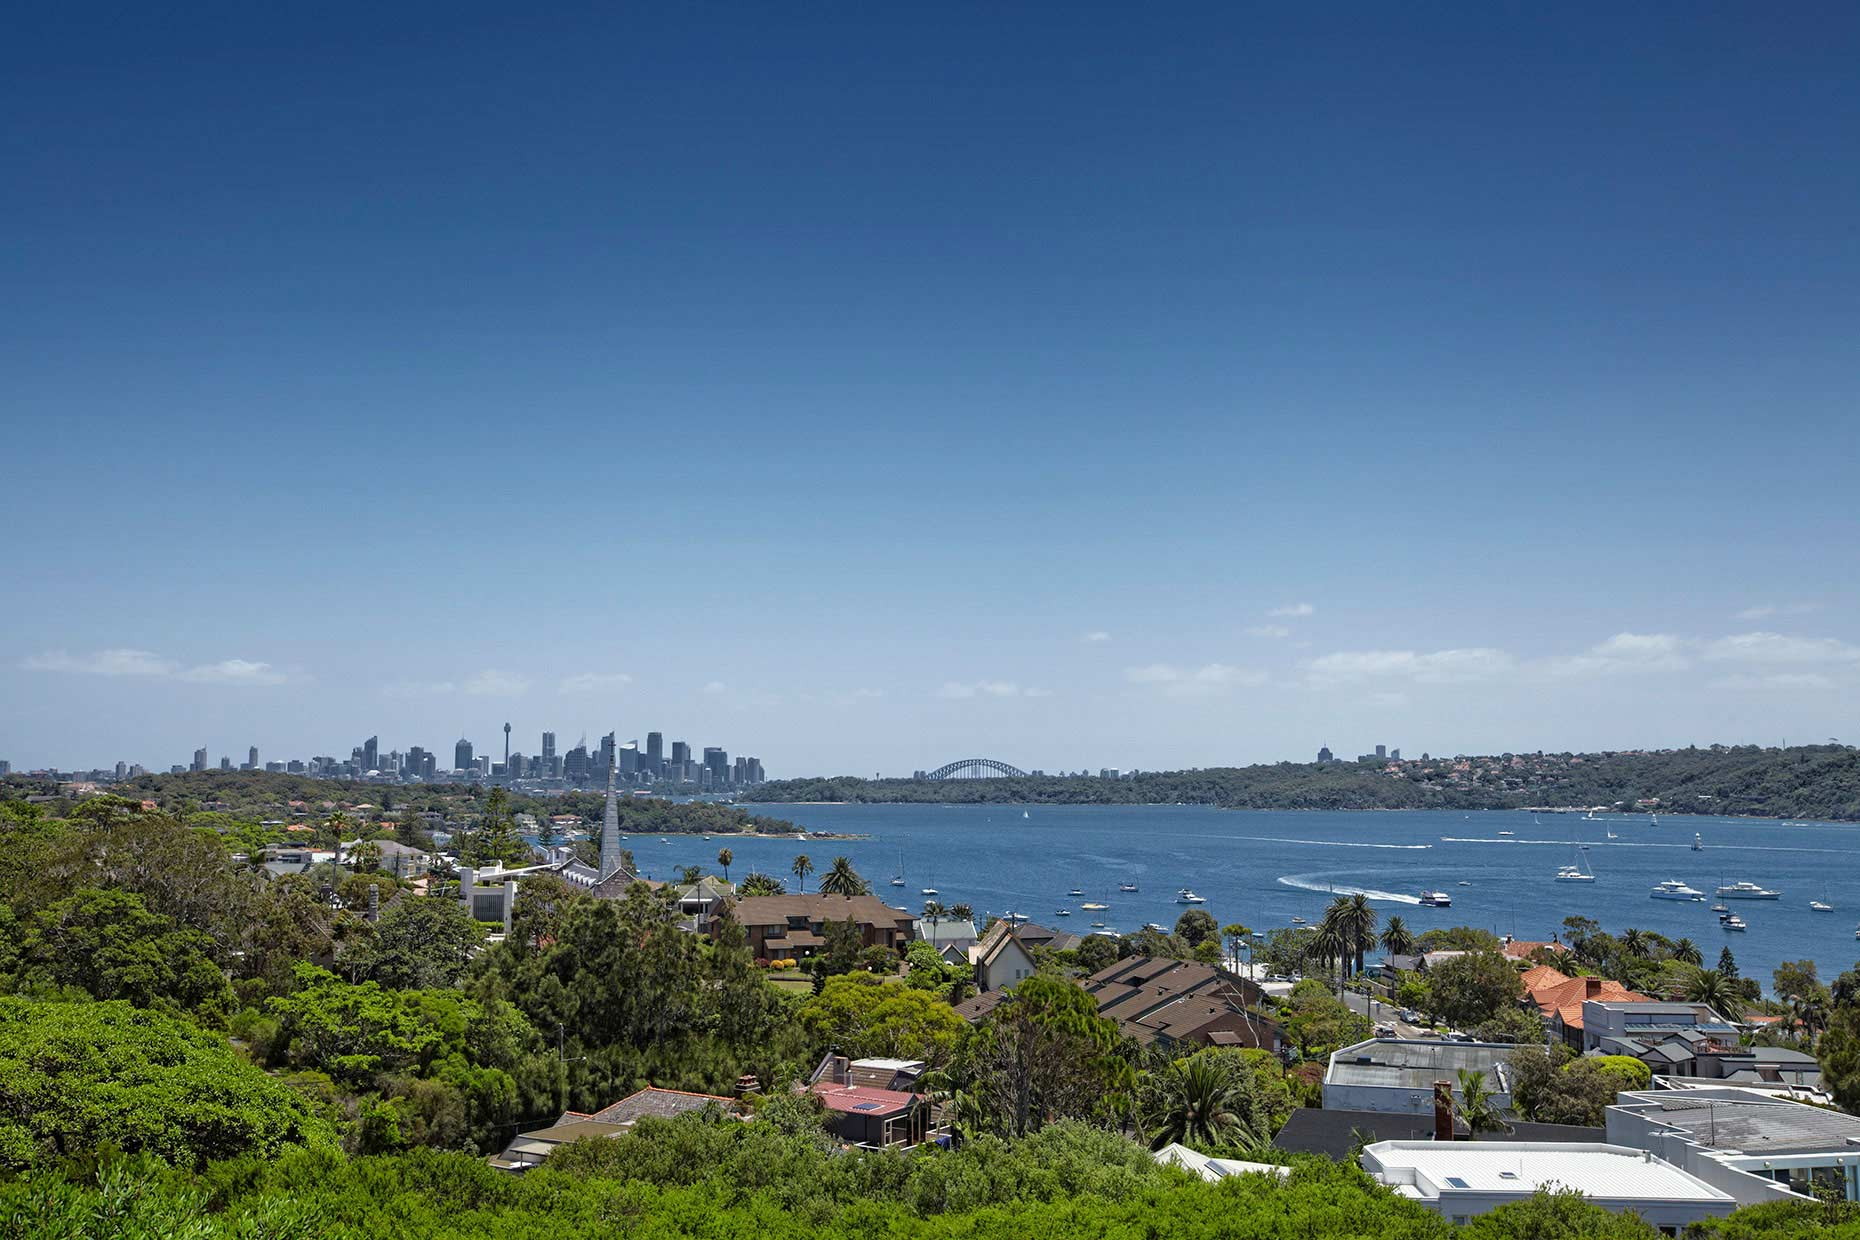 australie-down-under-watson-bay-ocean-sydney_skyline.jpg